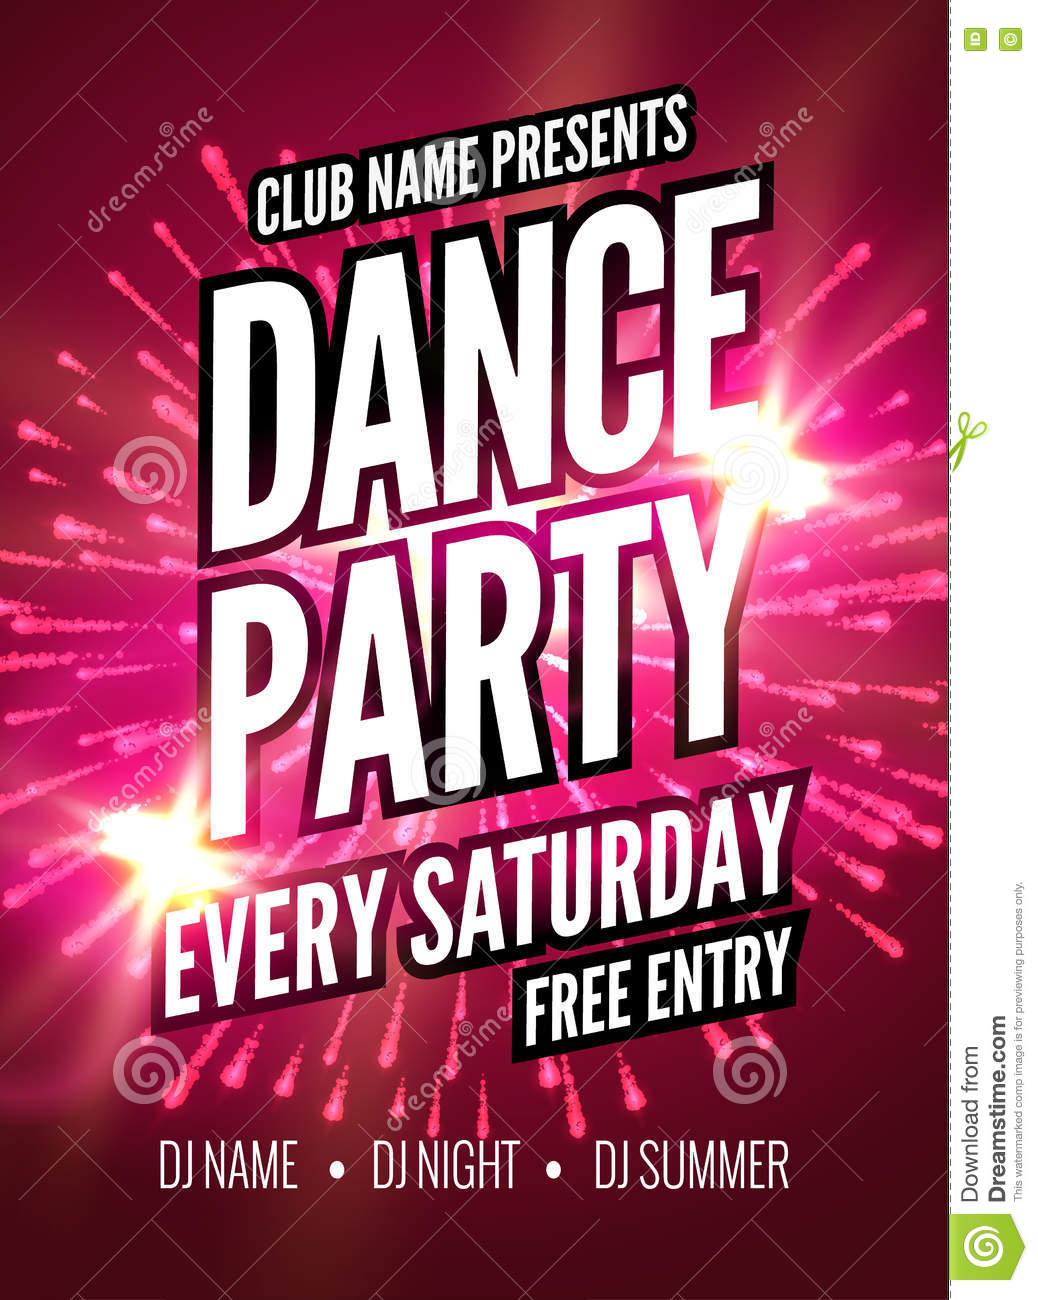 Free Event Poster Template | Dance Party Poster Template Night Dance Party Flyer Club Party